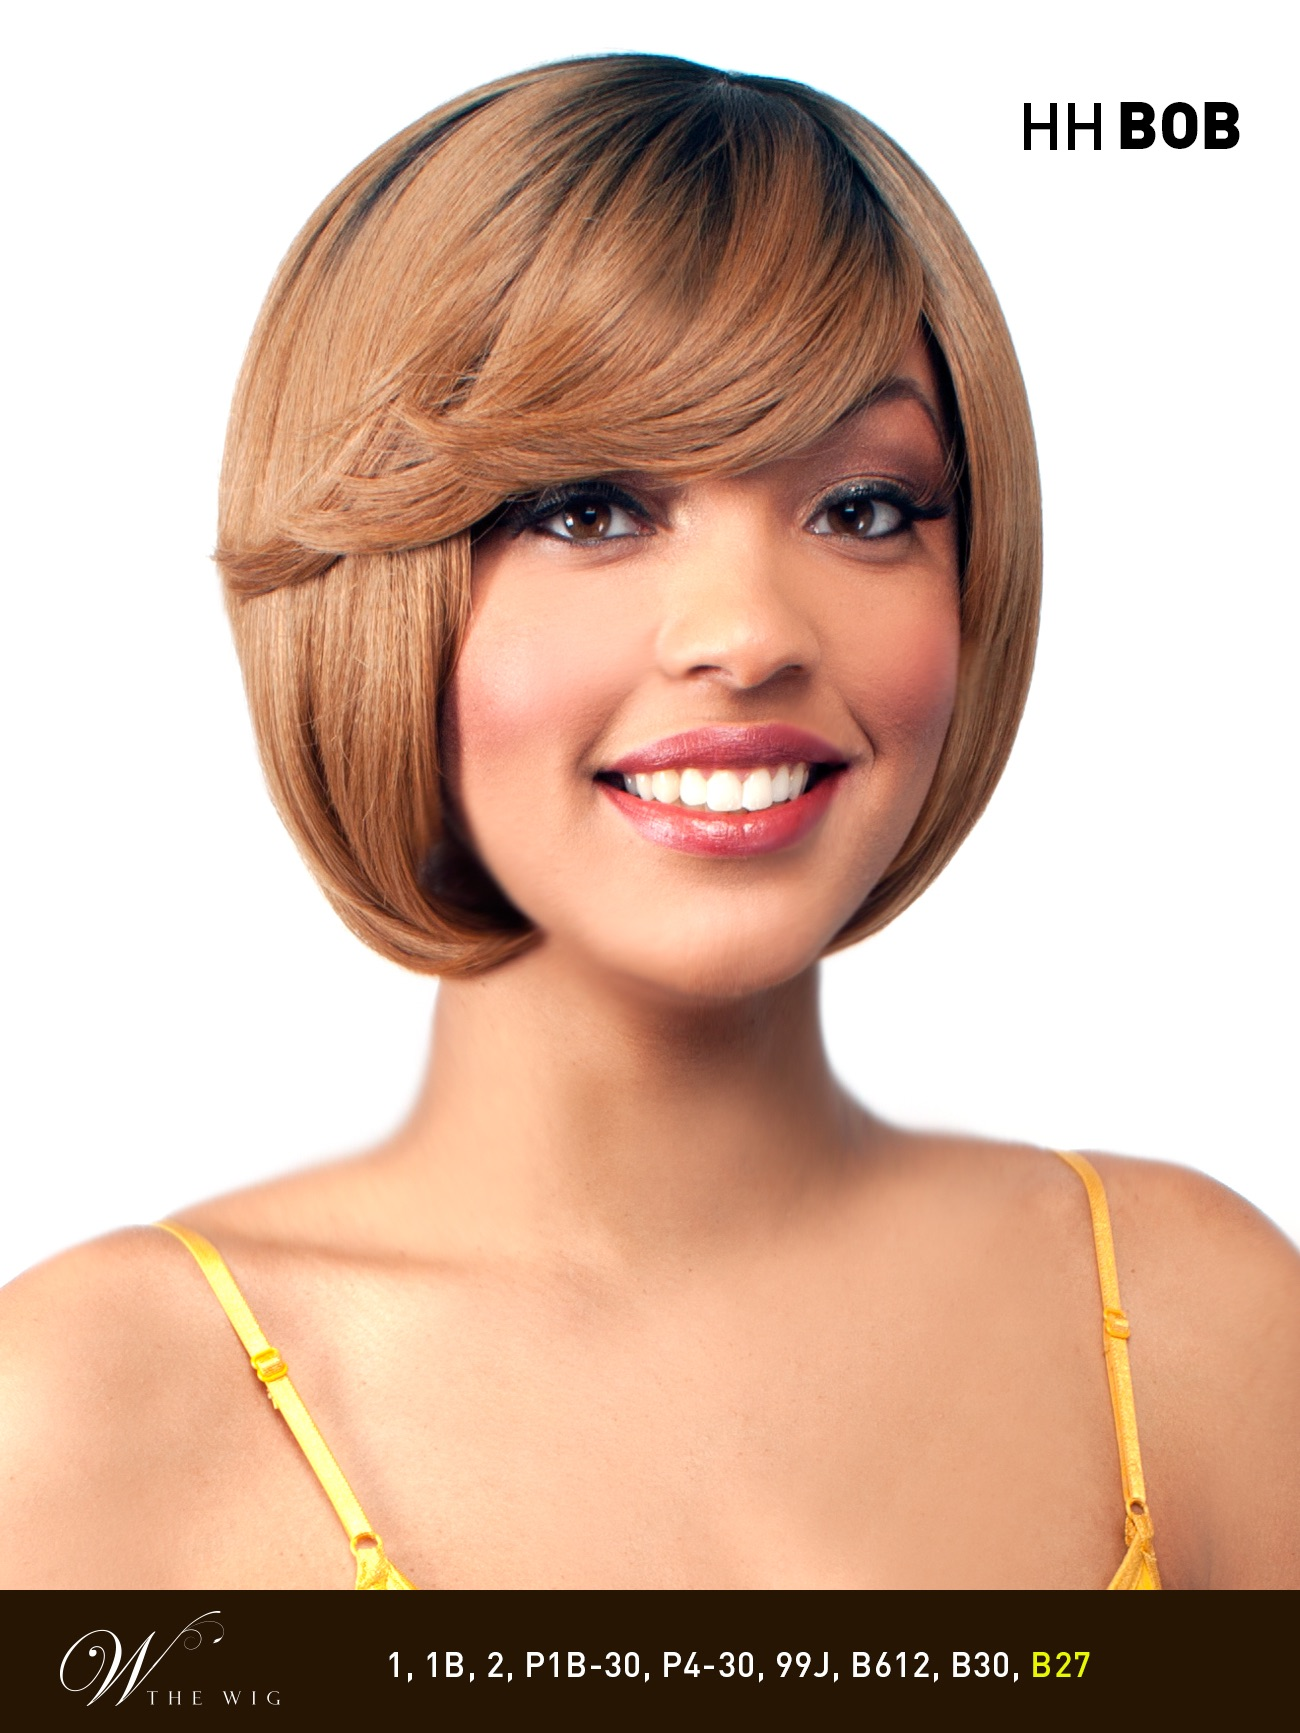 HH BOB - THE WIG 100% BRAZILIAN HUMAN HAIR BLEND WIG